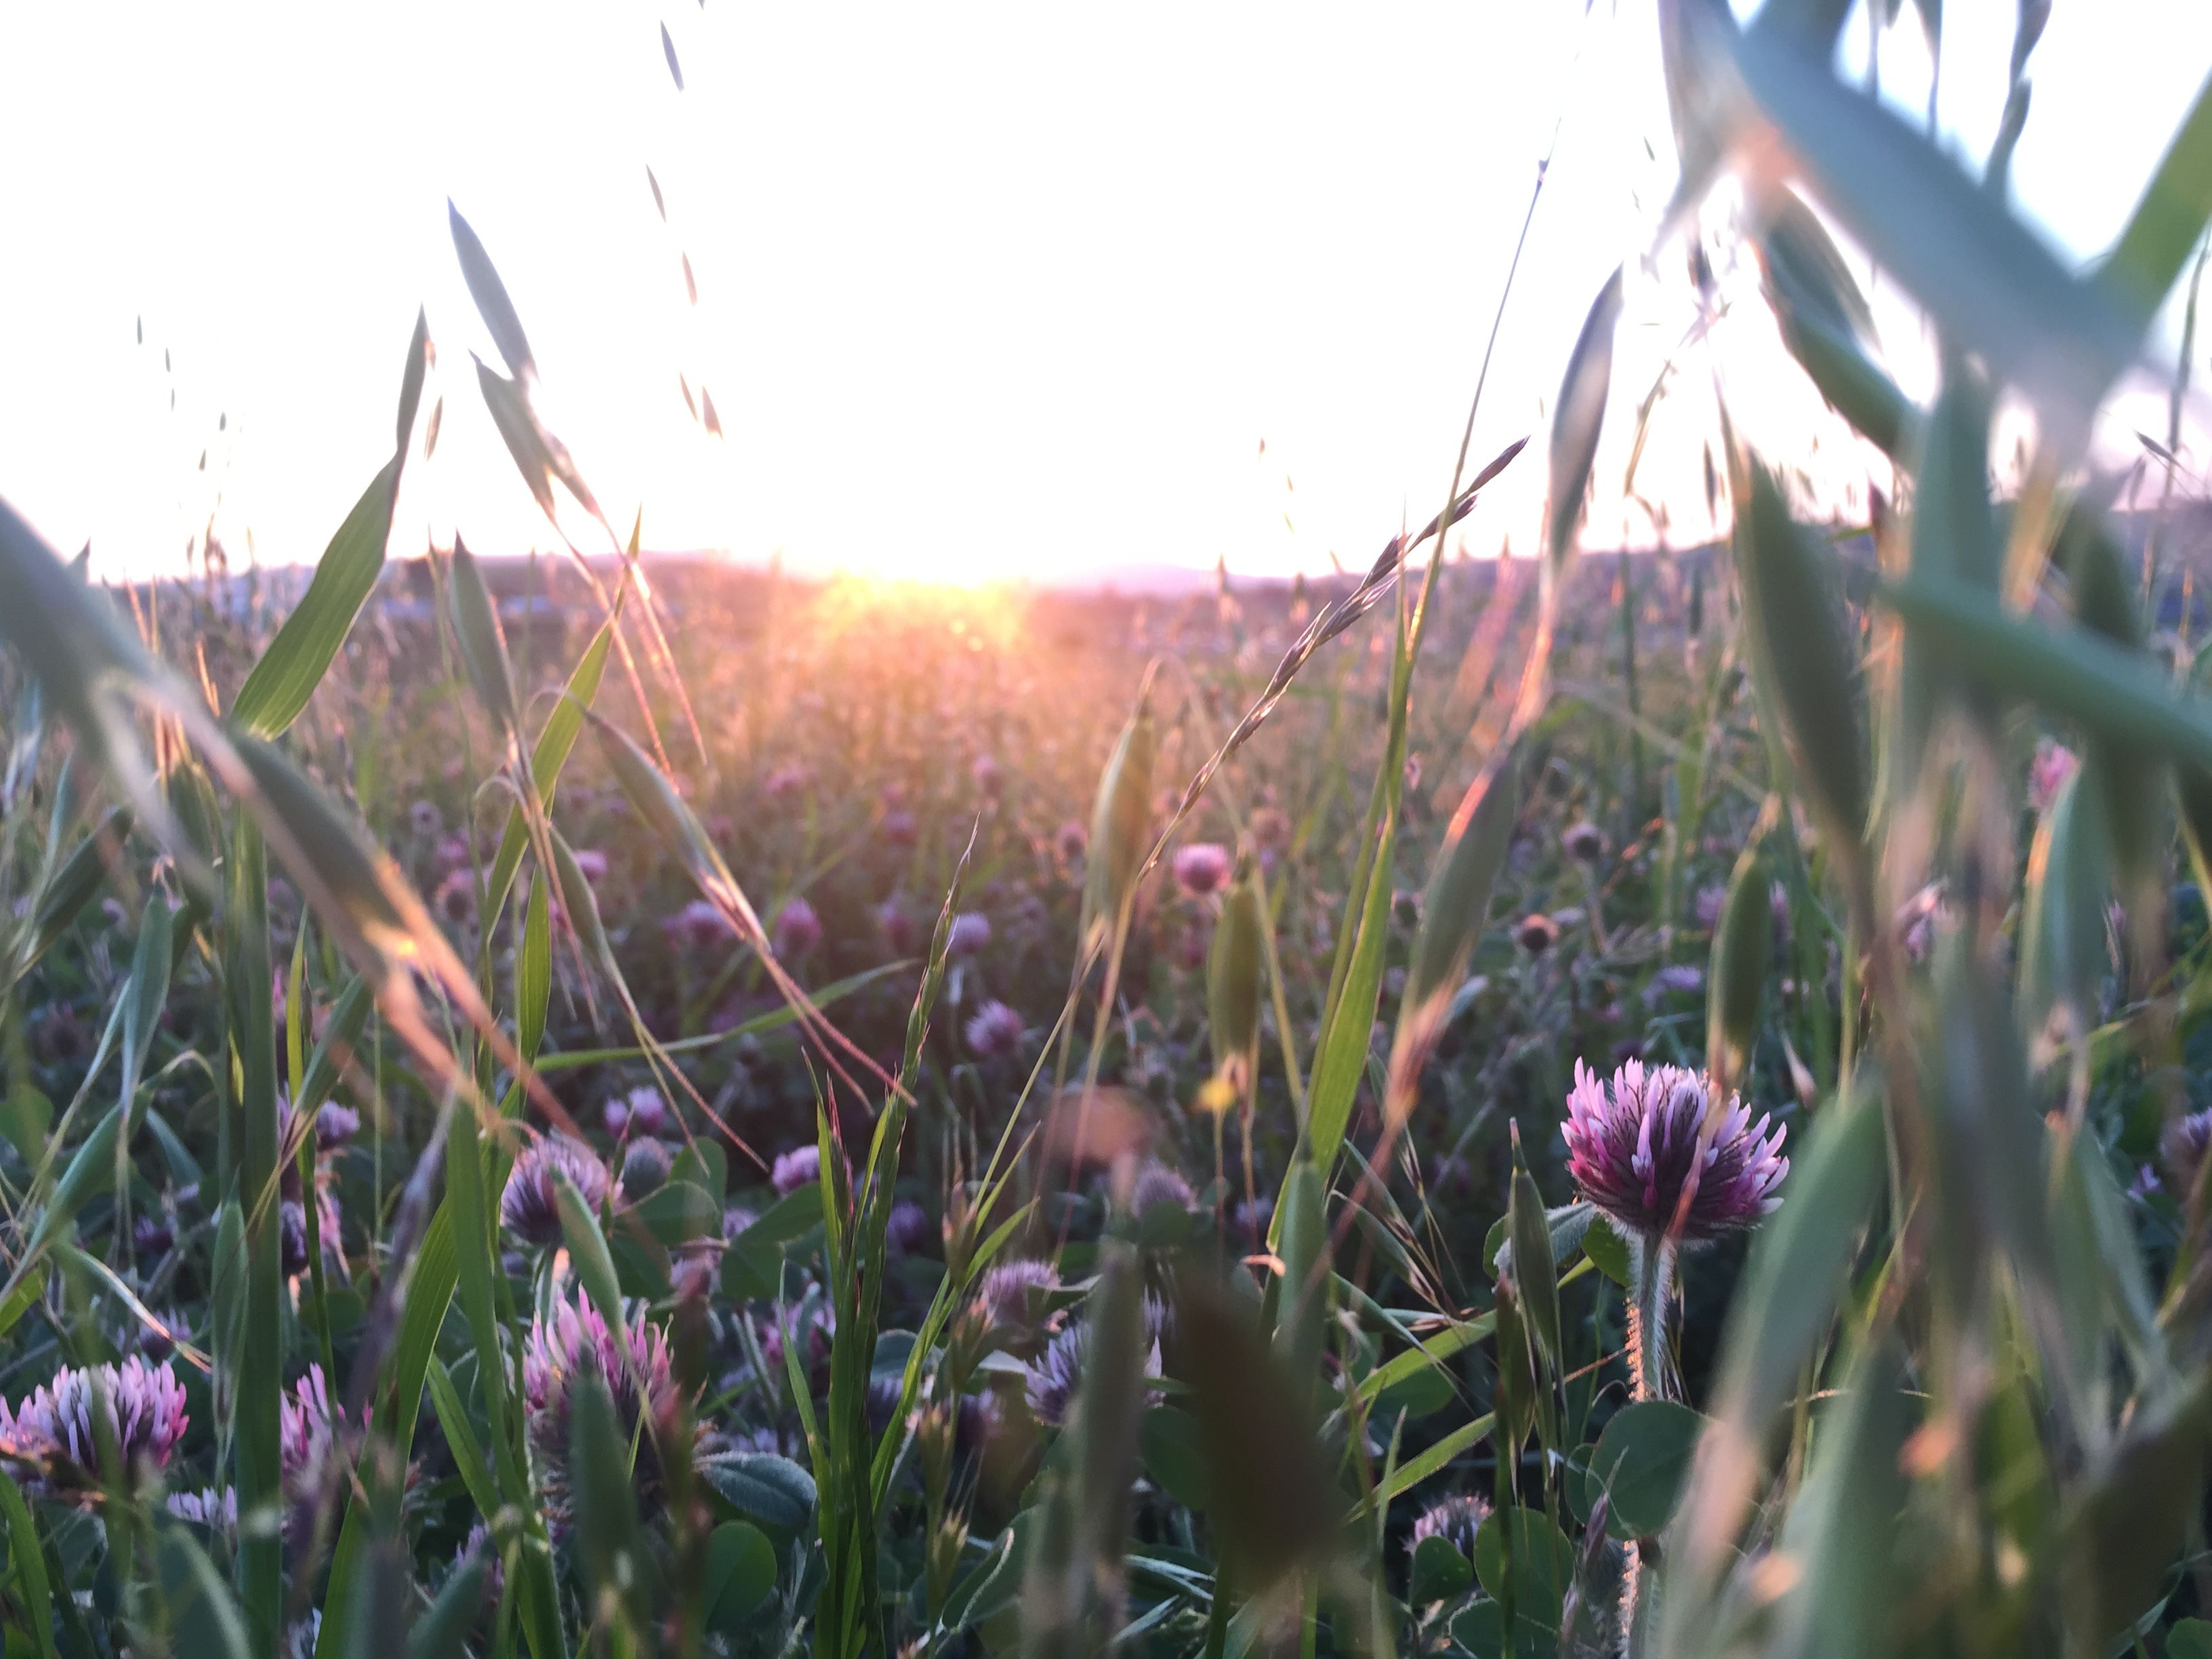 Grass purple flowers sunset photography sun rays hill by